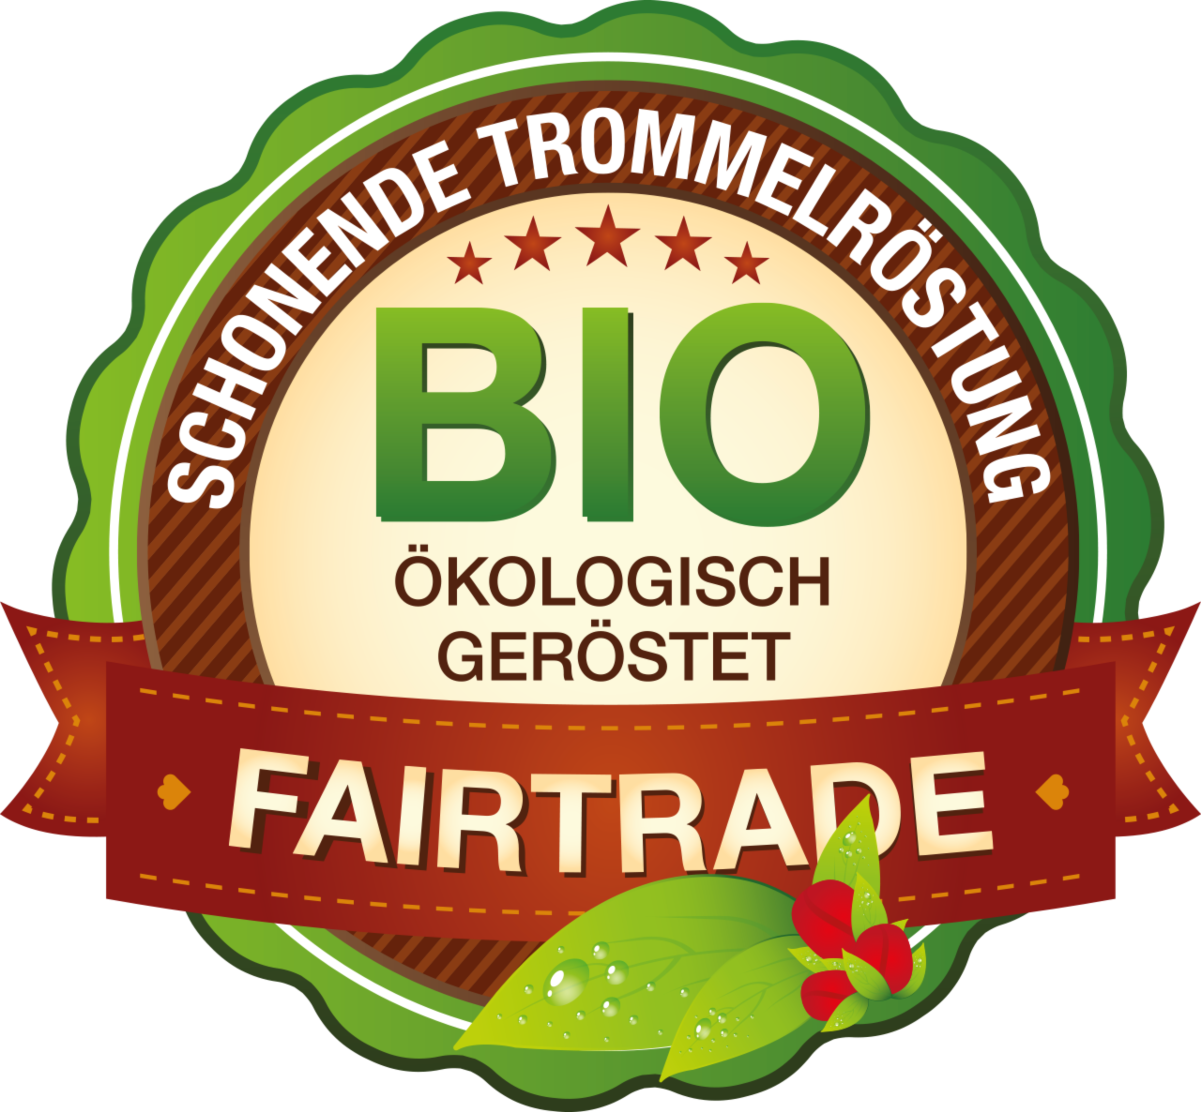 Secolino Bio Fairtrade